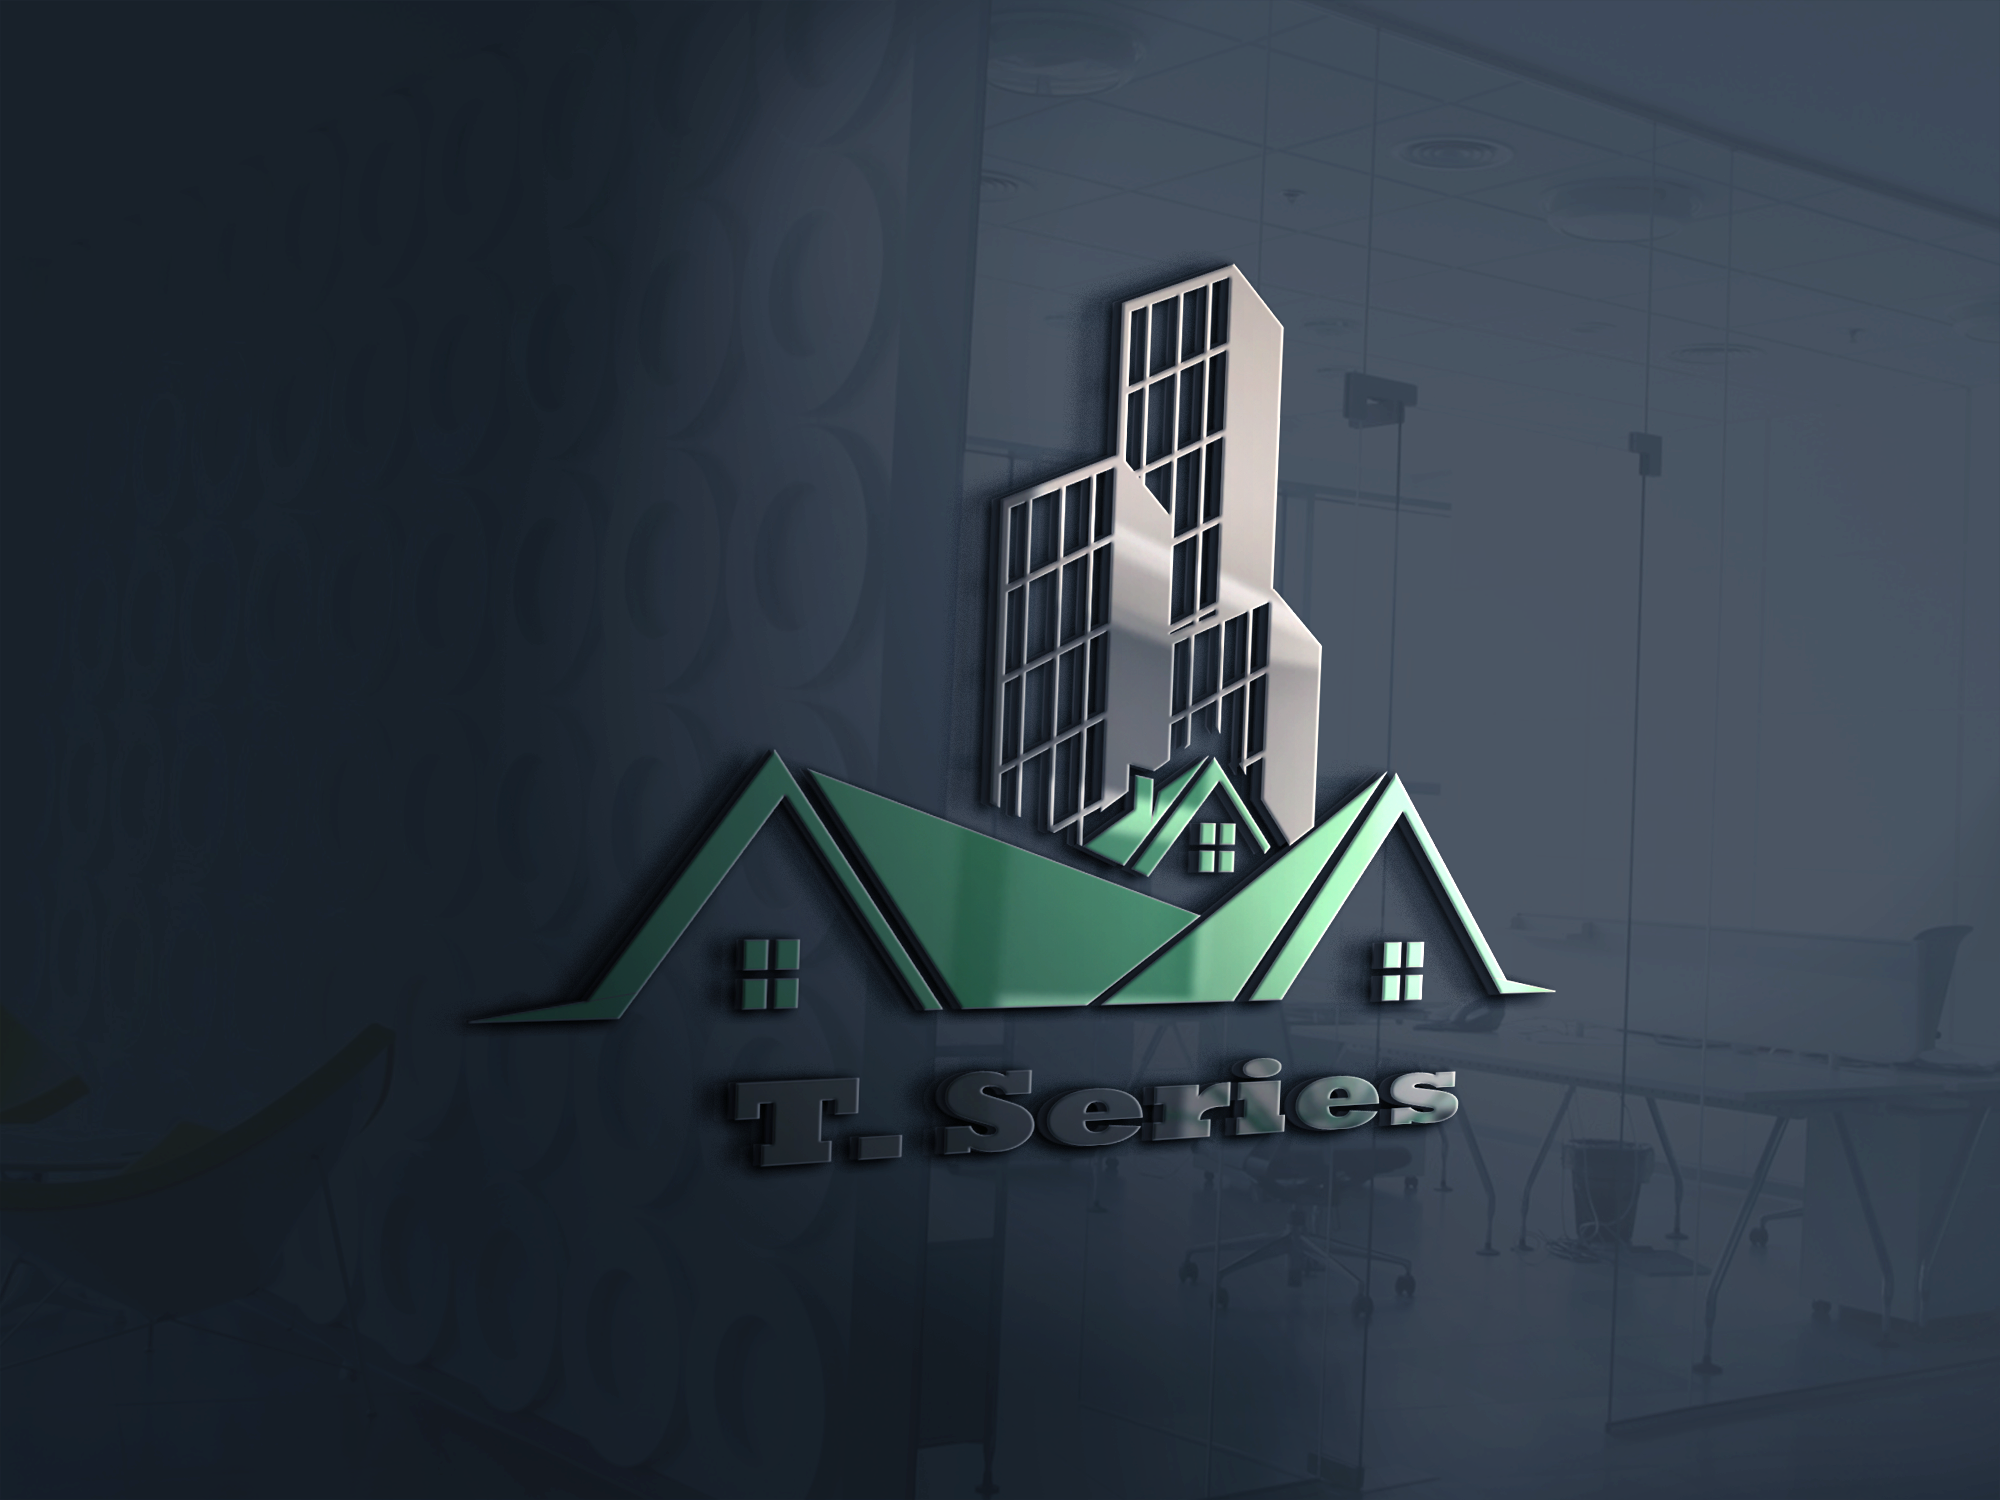 I will design a creative logo in 24 hours